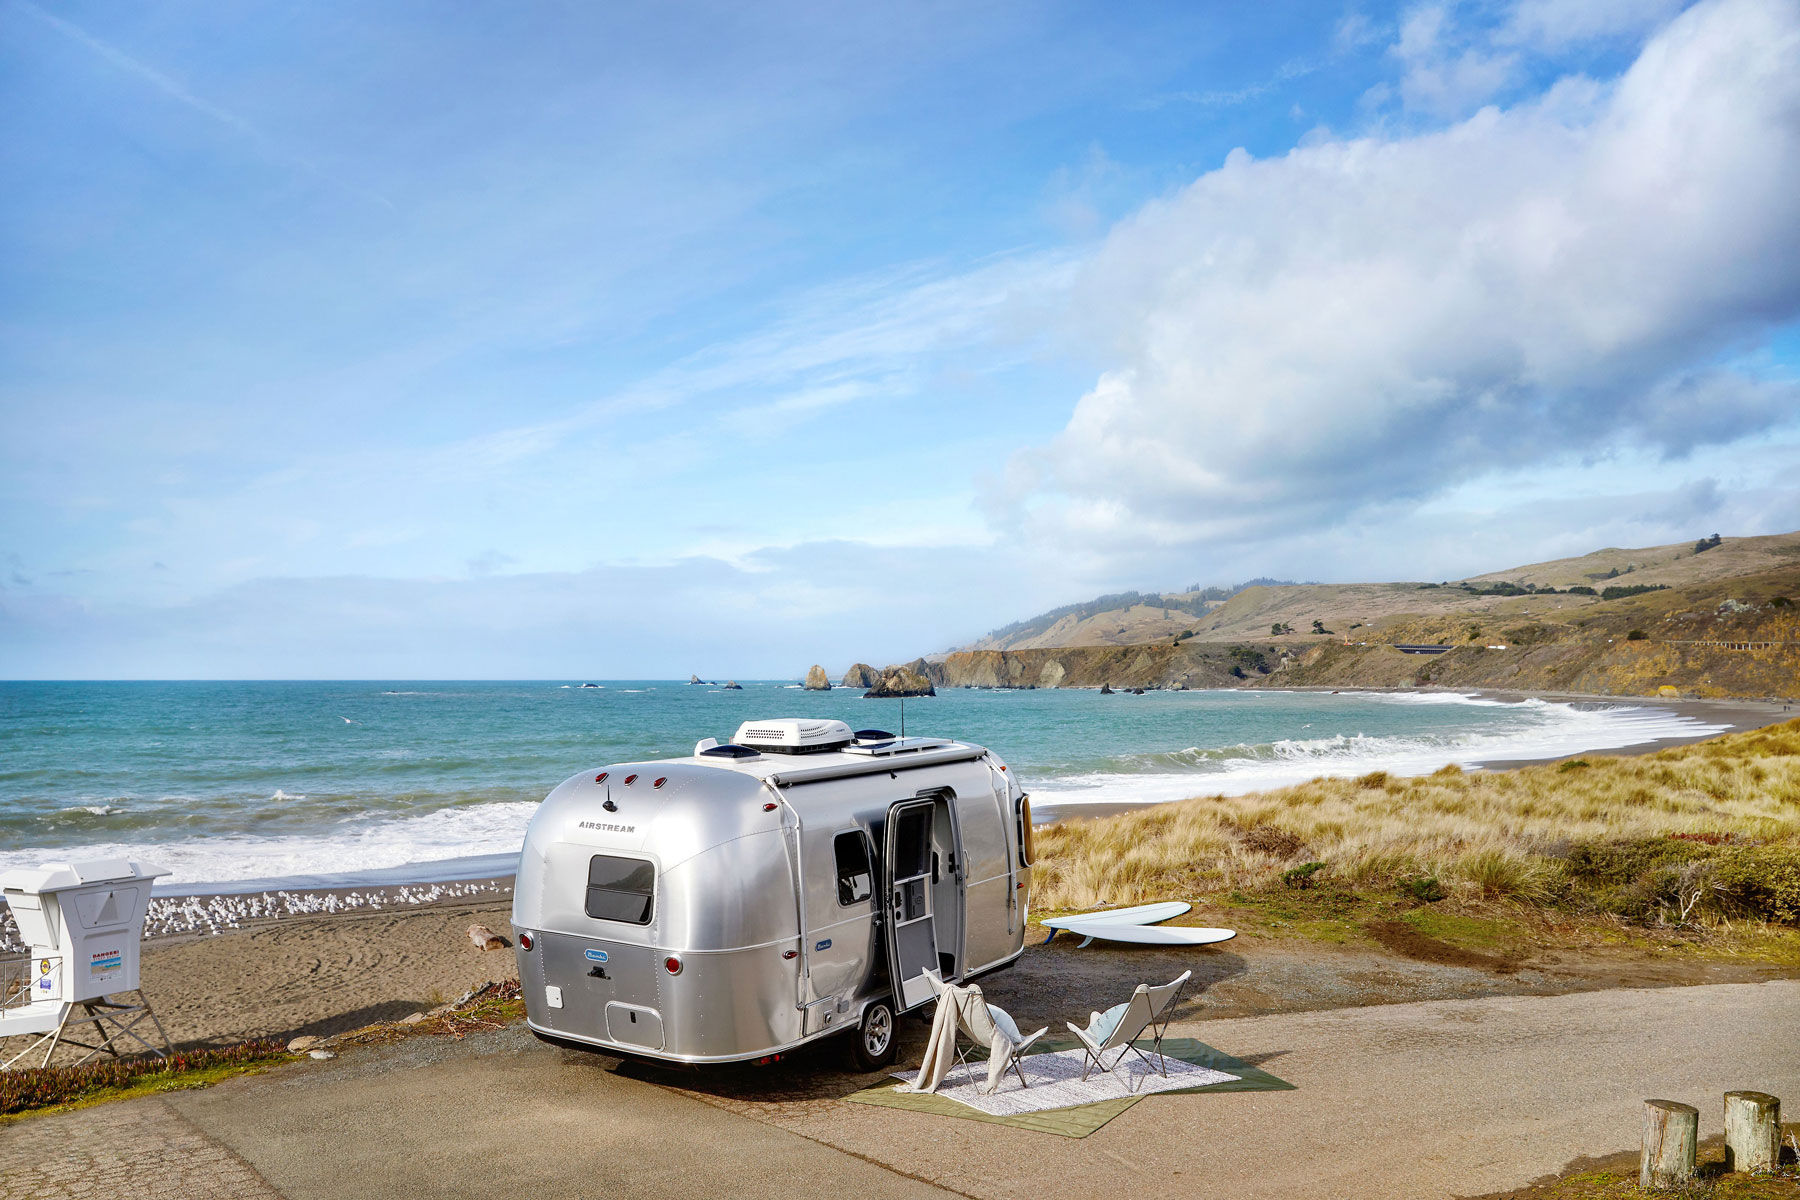 Airstream trailer parked near beach